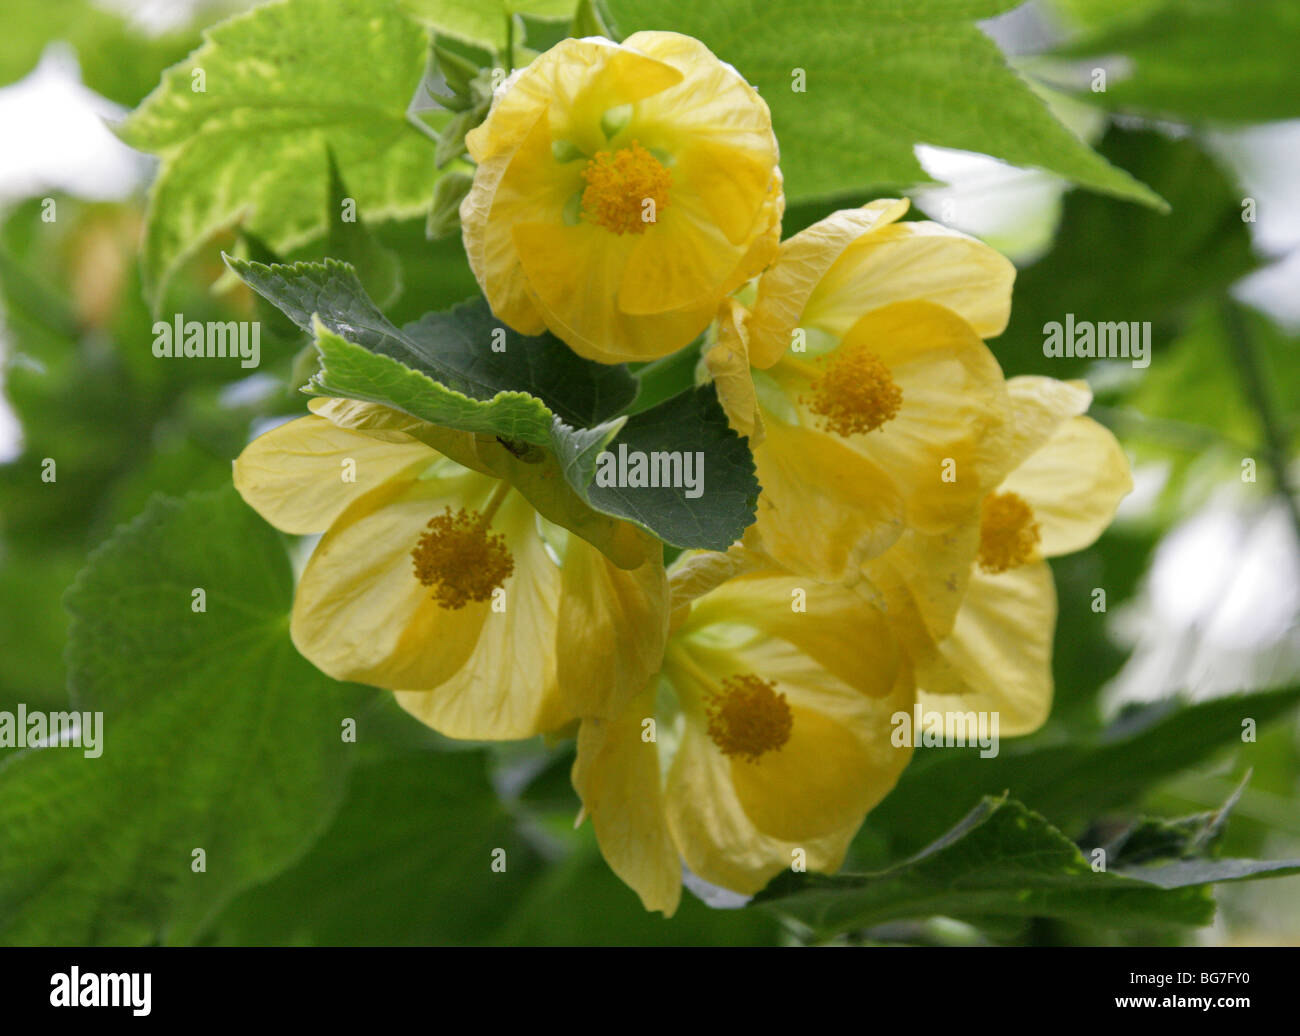 Abutilon, Flowering Maple, Chinese Bell Flower, Chinese Lantern, Abutilon 'Moonchimes', Malvaceae. - Stock Image